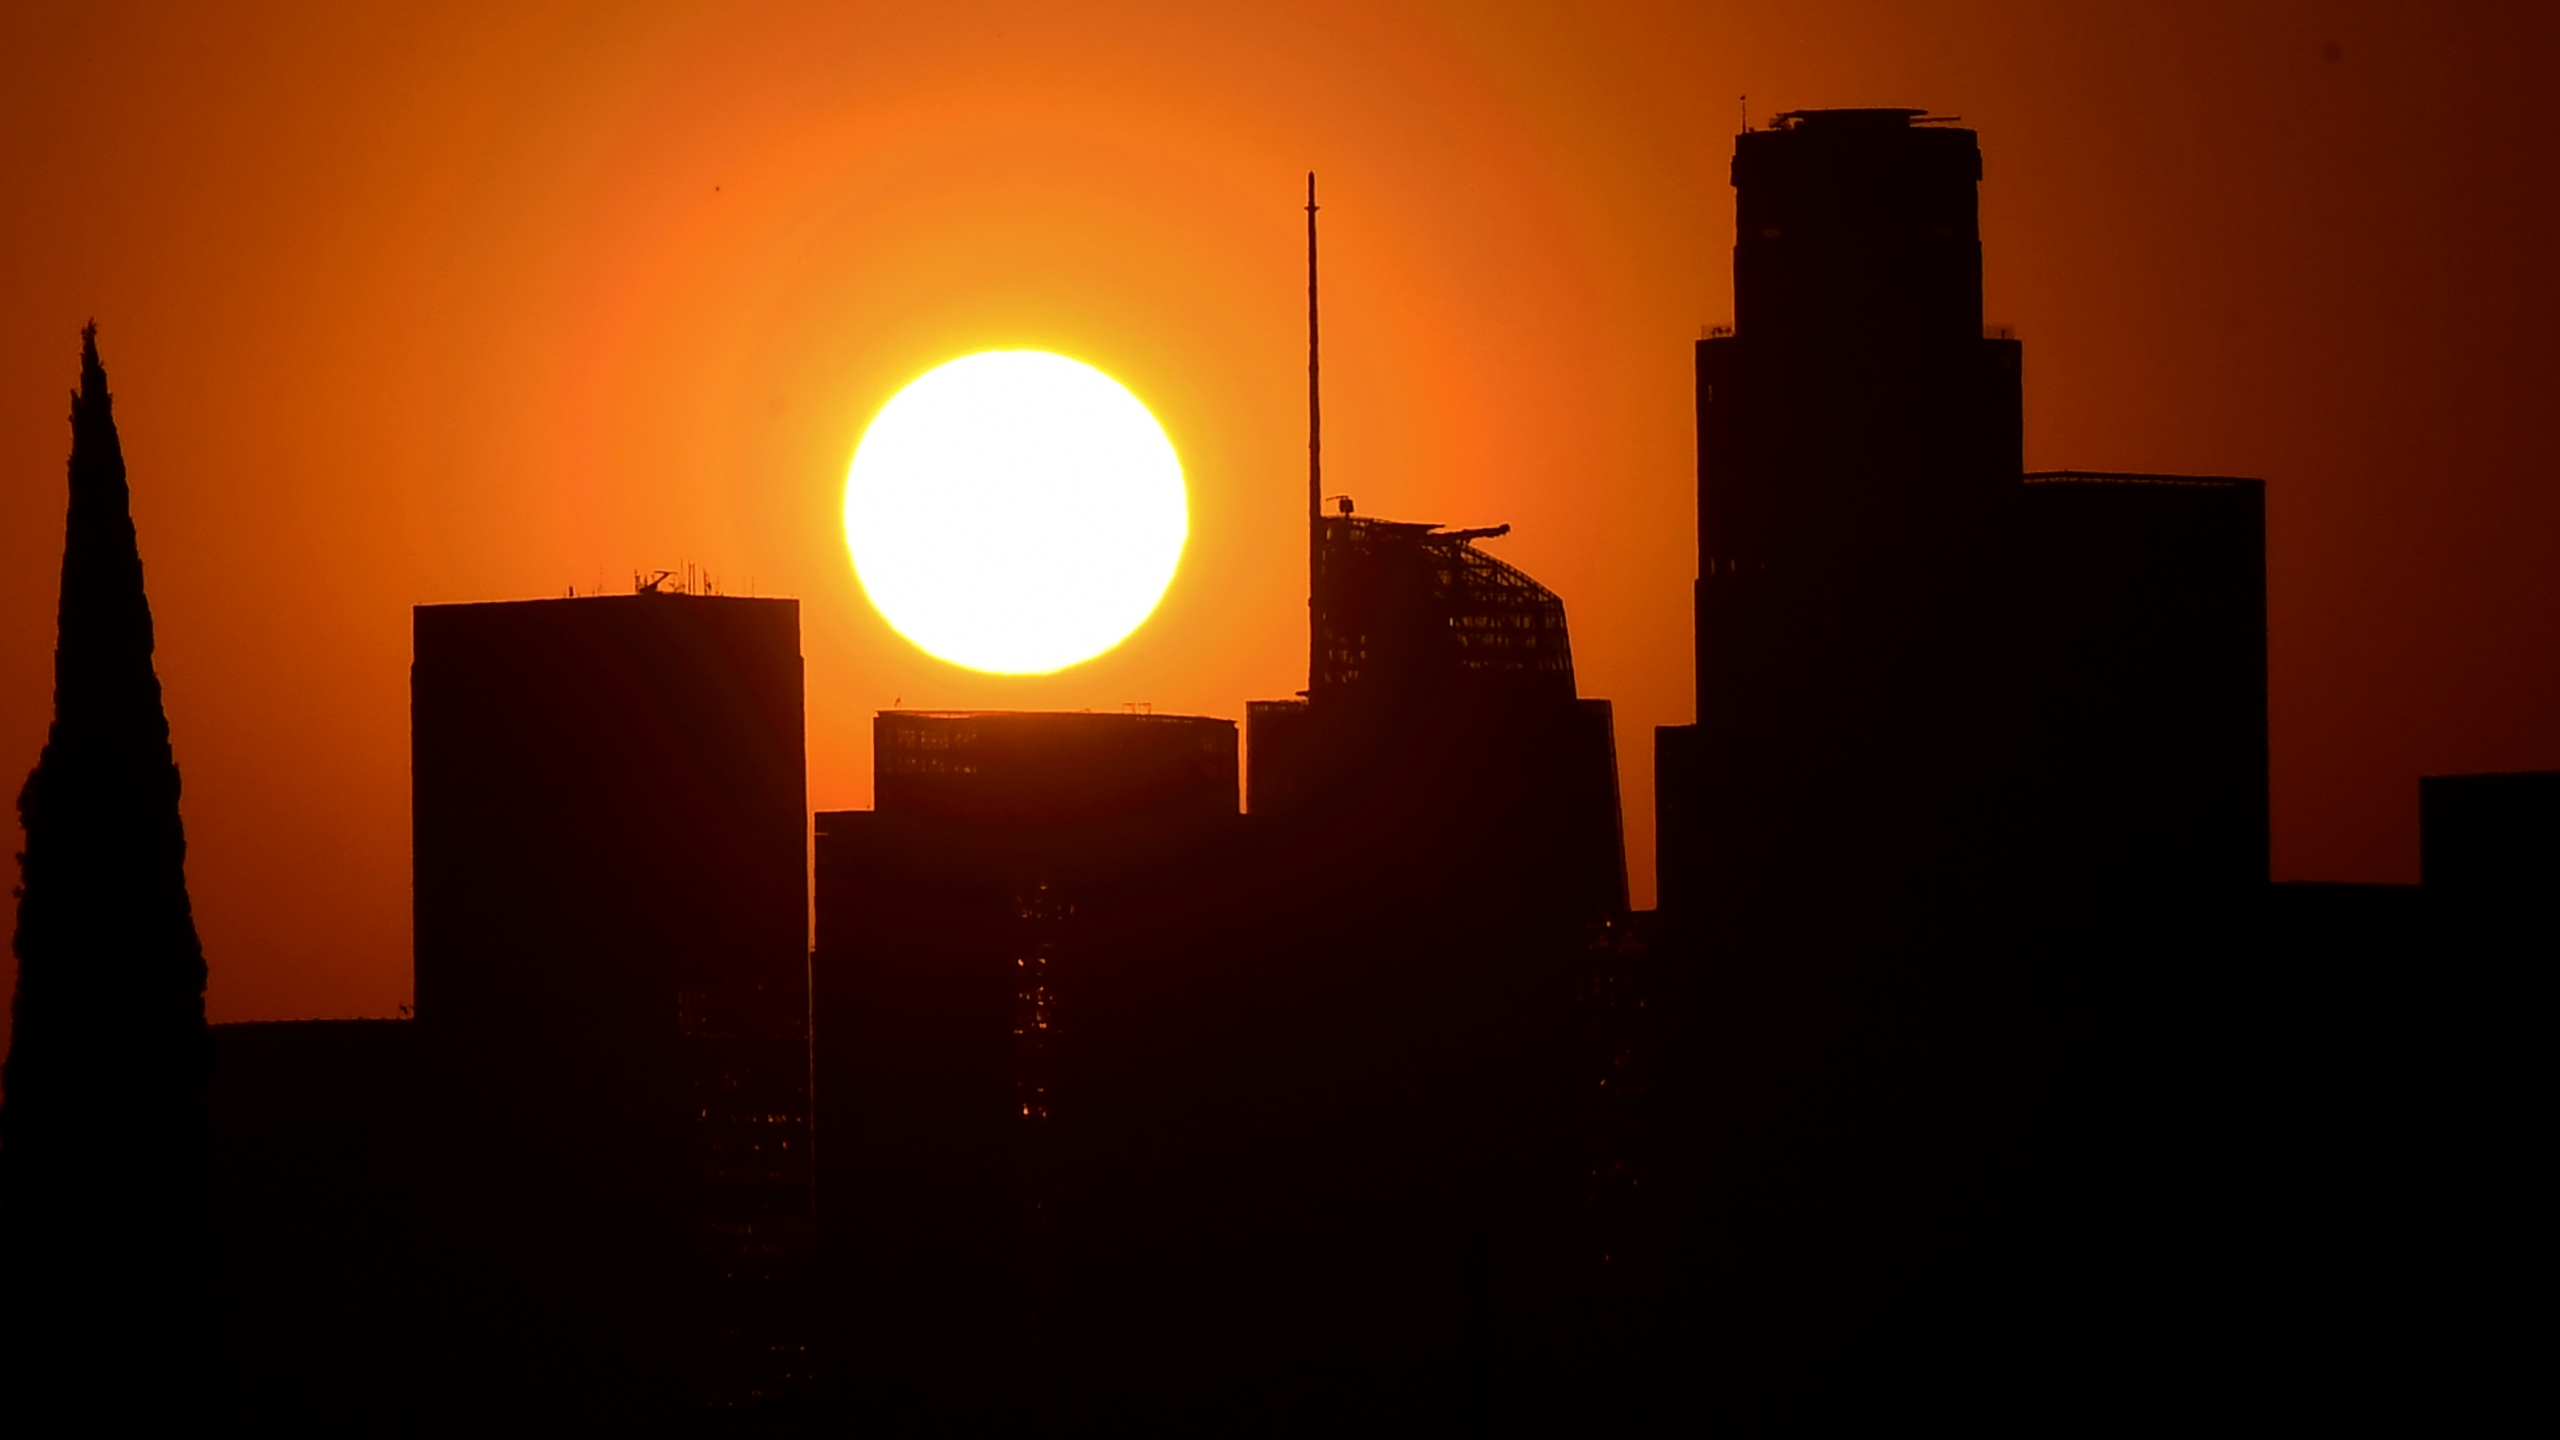 The sun sets behind highrise buildings in downtown Los Angeles on Sept. 30, 2020. (Frederic J. Brown / AFP / Getty Images)